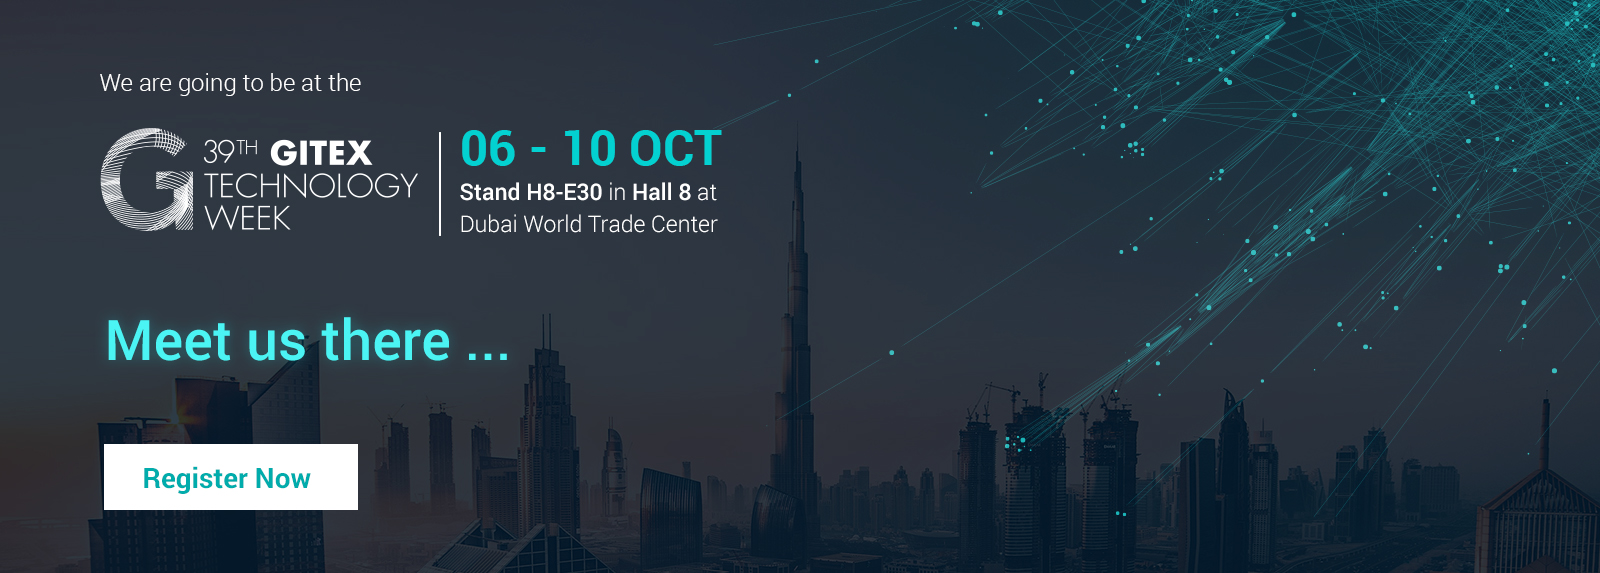 Visit UCS at GITEX 2019